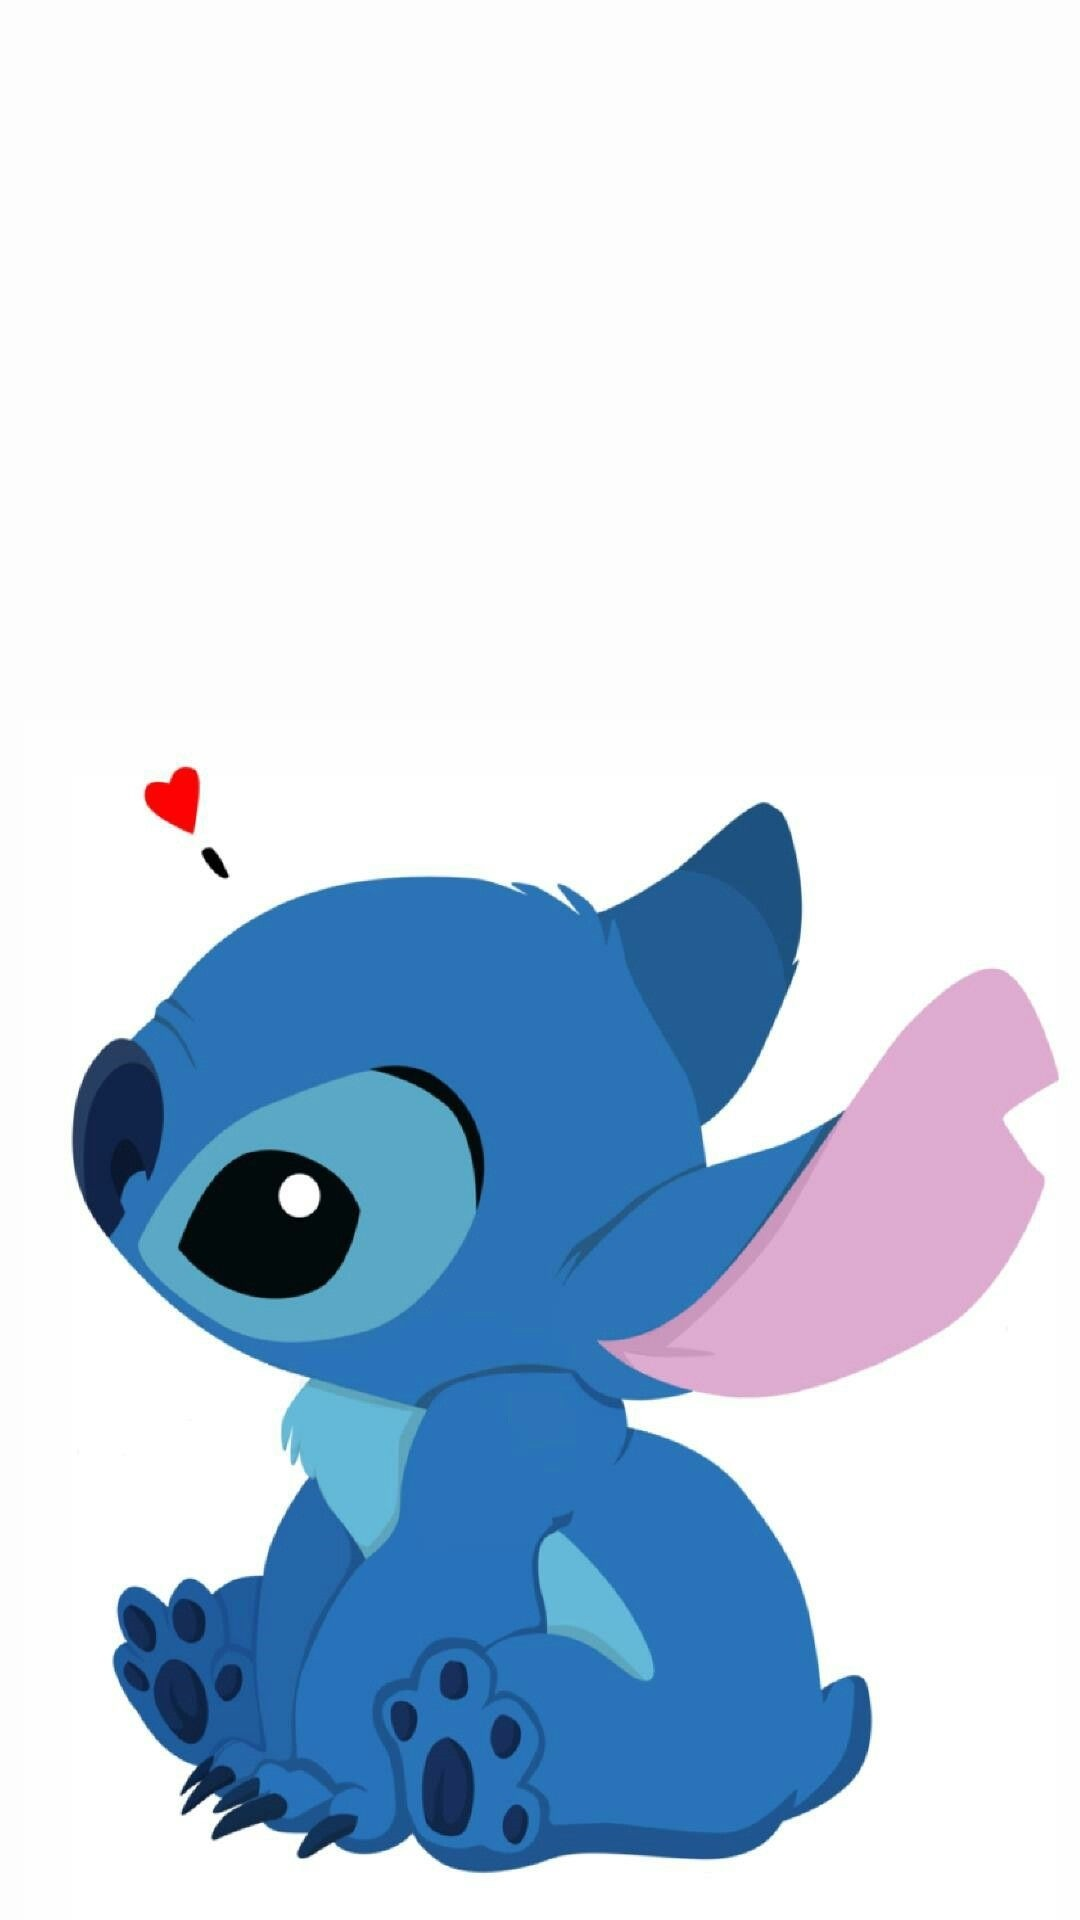 Stitch wallpaper for iphone